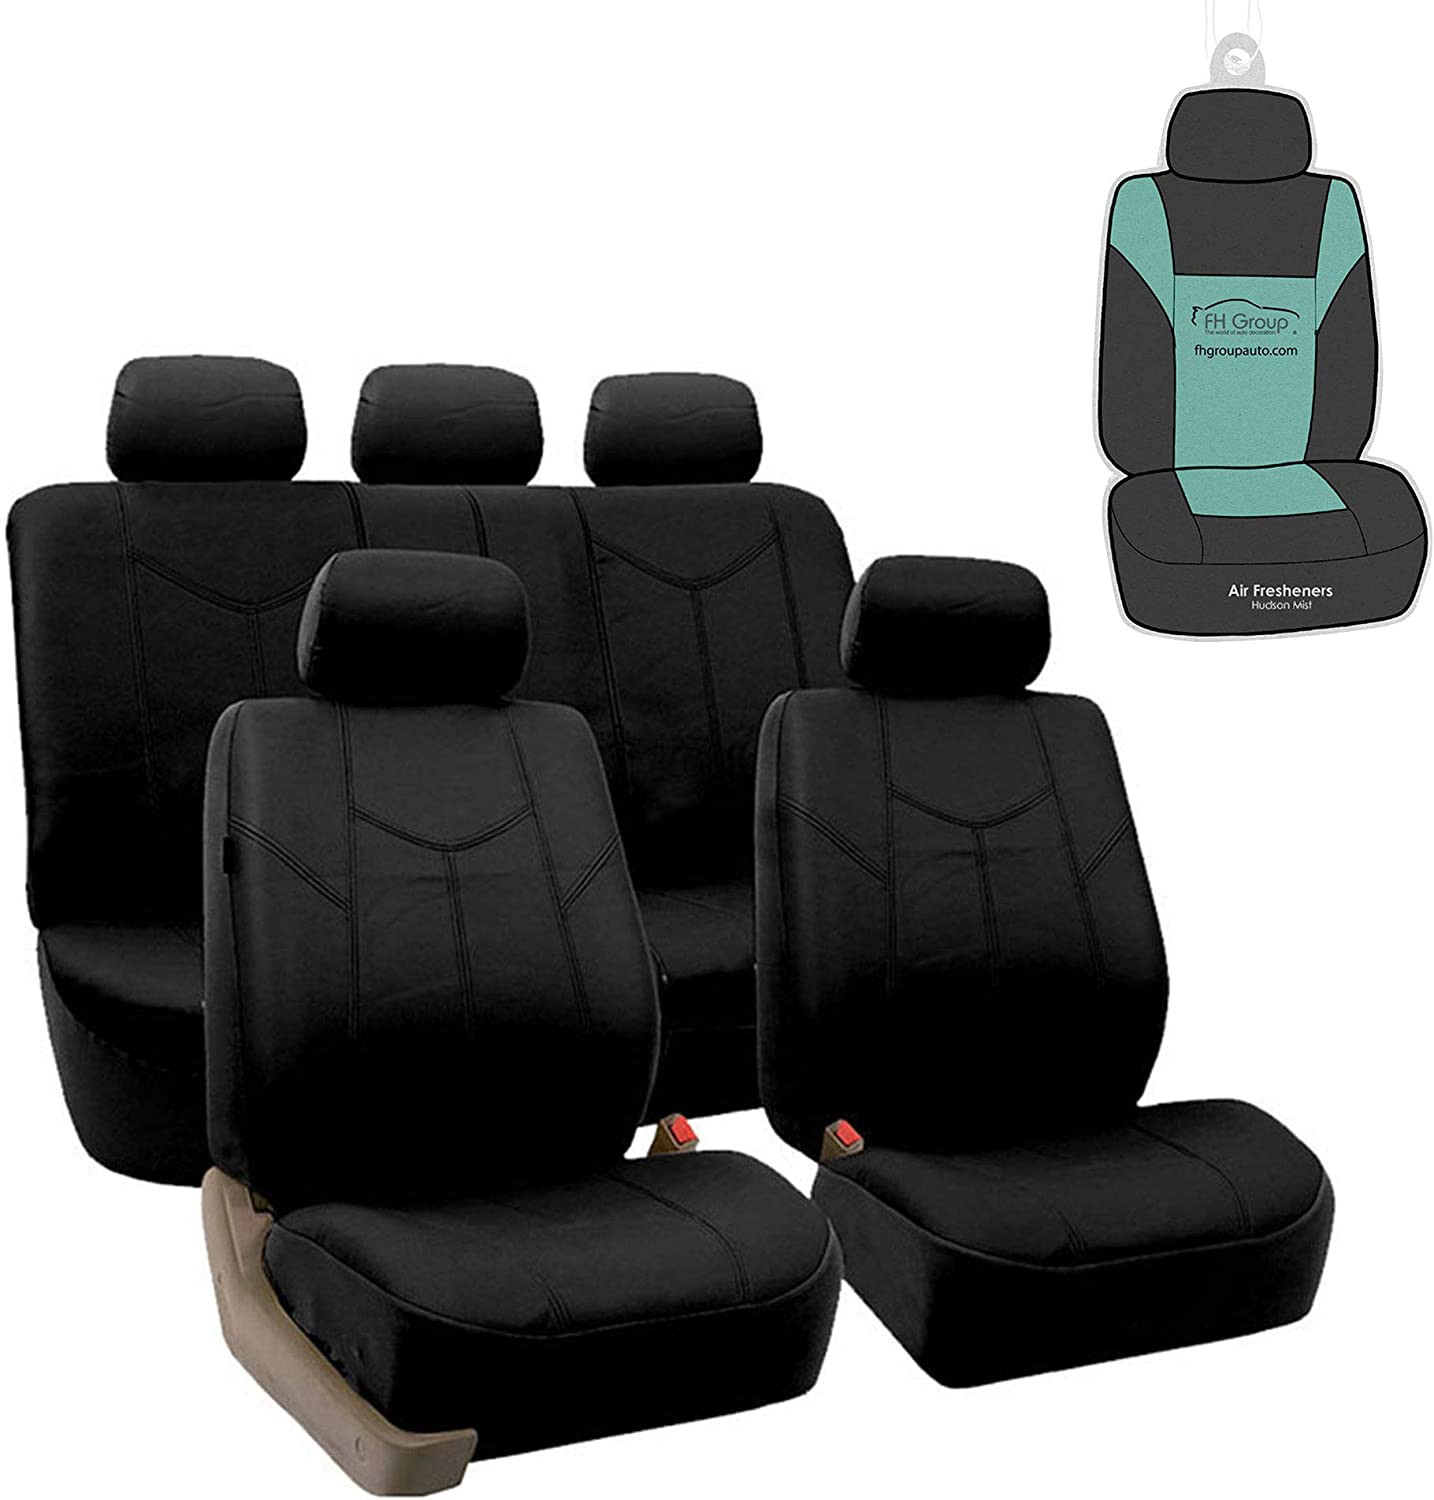 Solid Tan or Van Airbag compatible Truck Fit Most Car Suv FH Group PU009102 Rome PU Leather Pair Set Car Seat Covers